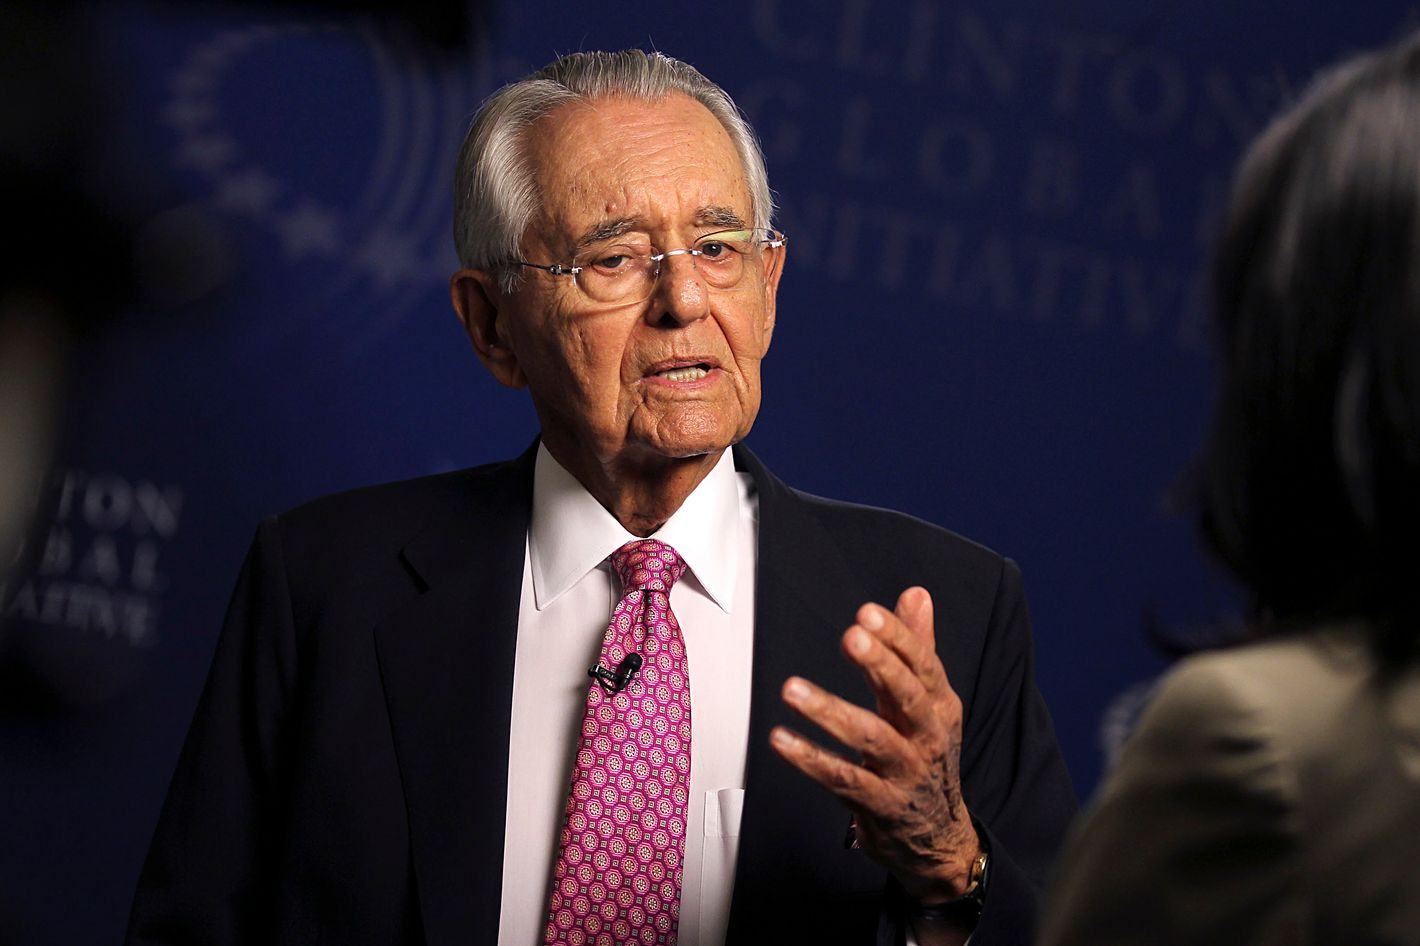 Peter G. 'Pete' Peterson, co-founder of Blackstone Group LP and founder and chairman of the Peter G. Peterson Foundation, pauses during a Bloomberg Television interview at the the annual meeting of the Clinton Global Initiative (CGI) in New York, U.S., on Monday, Sept. 24, 2012. The nonpartisan conference offers participants a forum for networking and building support for projects and financial commitments to alleviate poverty, disease and social obstacles and encourage development.